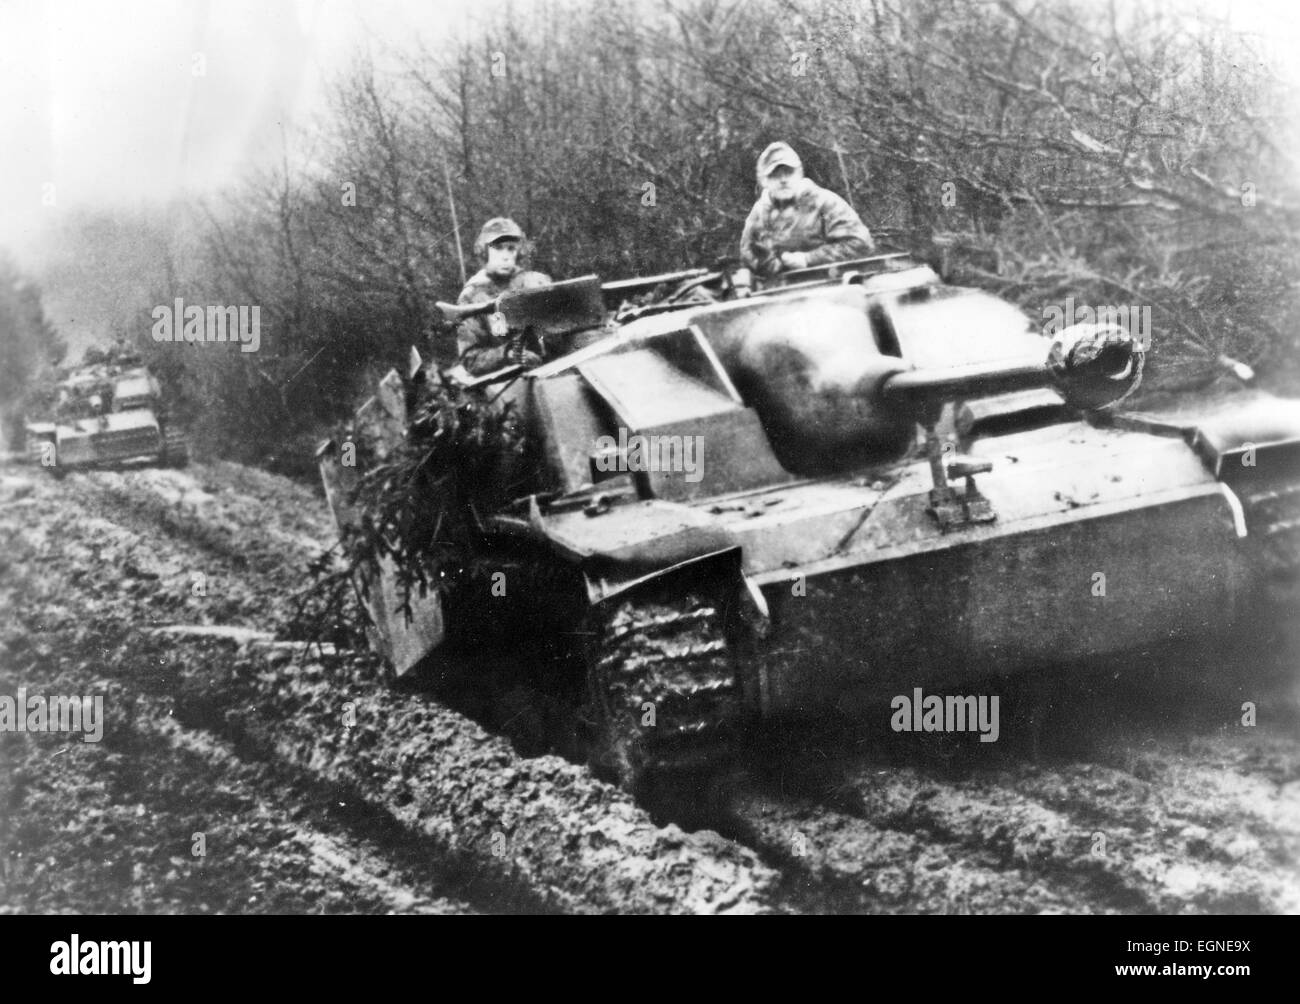 GERMAN PANZERTRUPPEN during WW2 - Stock Image